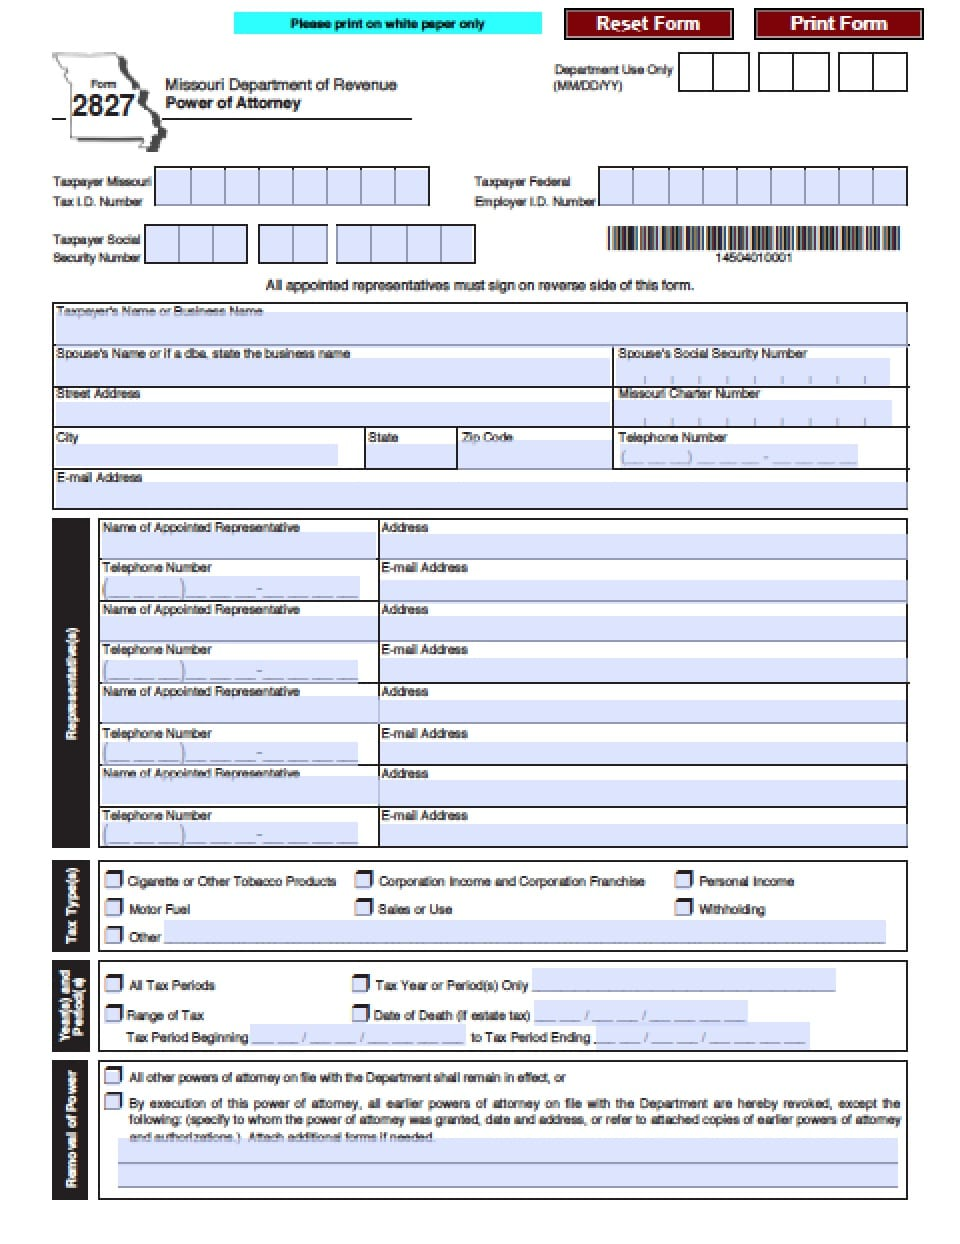 Missouri Tax Power Of Attorney Form